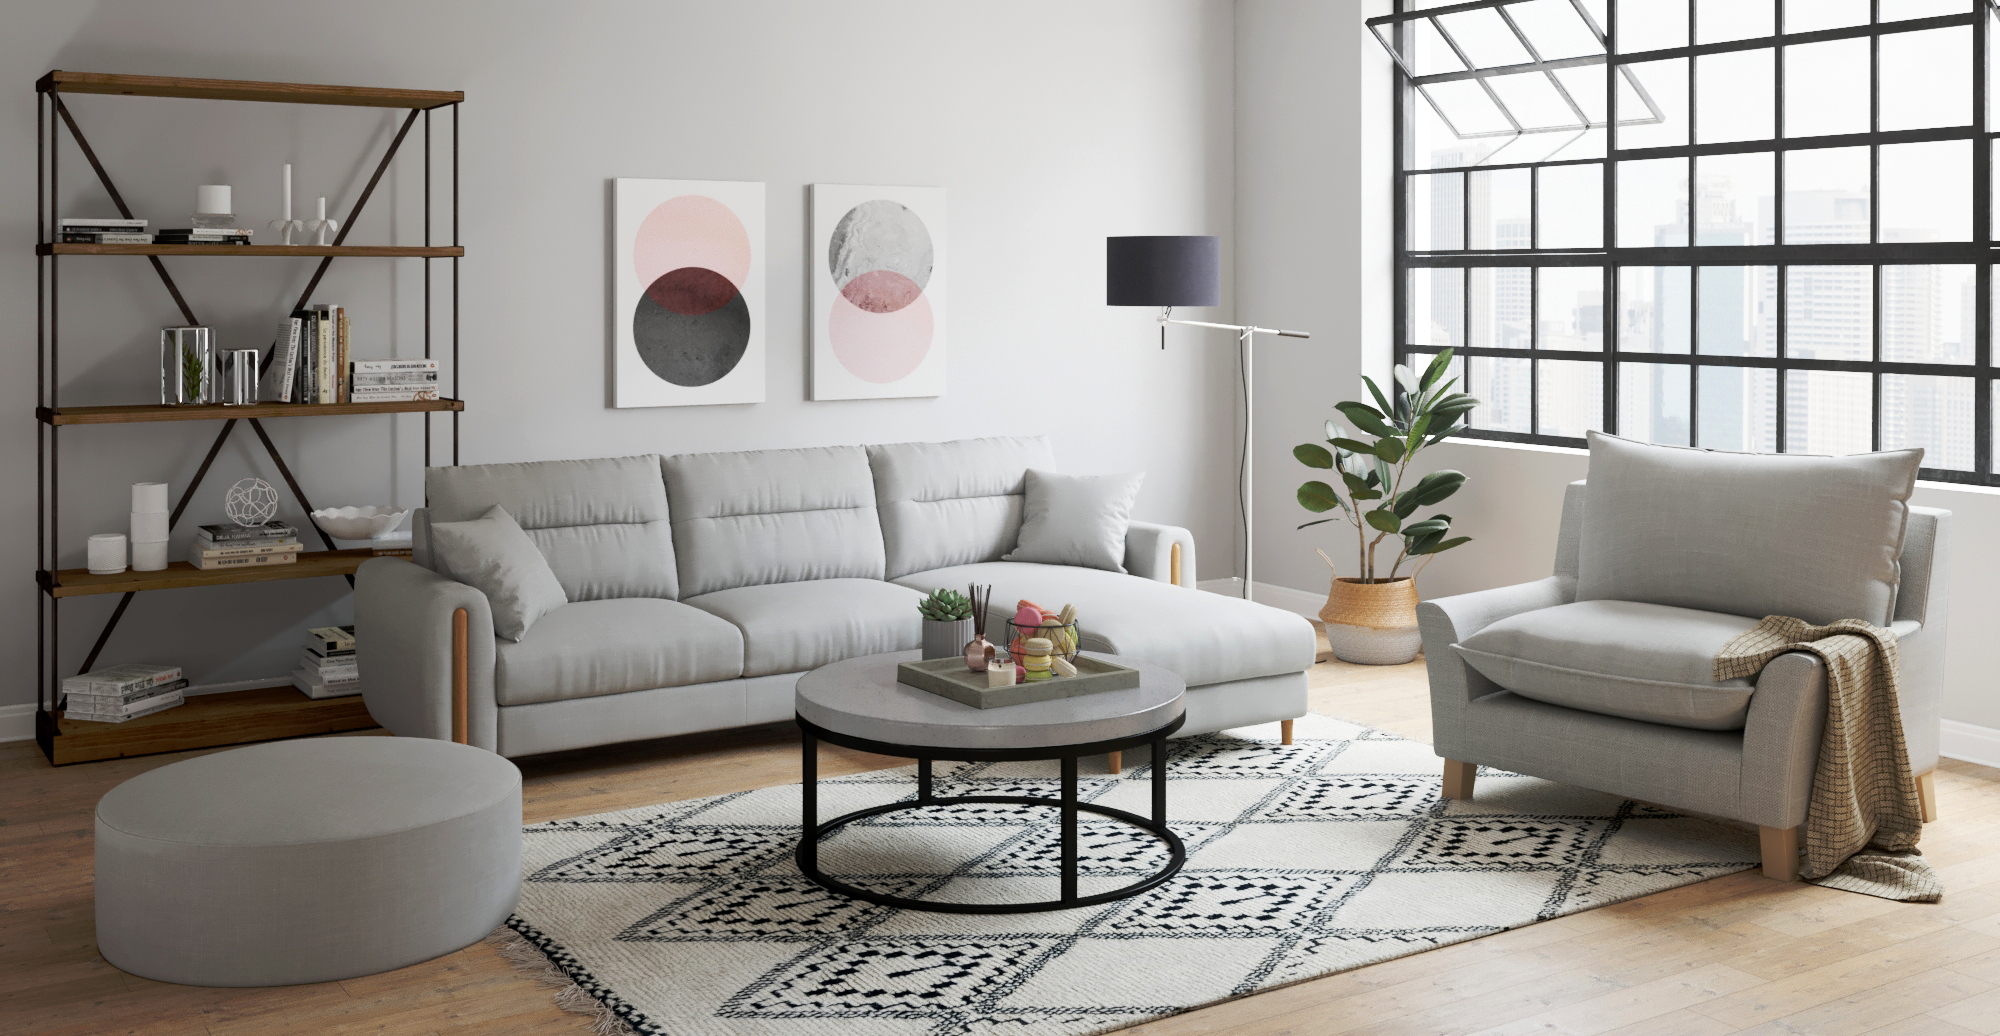 Brosa Blake Indoor / Outdoor Coffee Table in modern contemporary living room